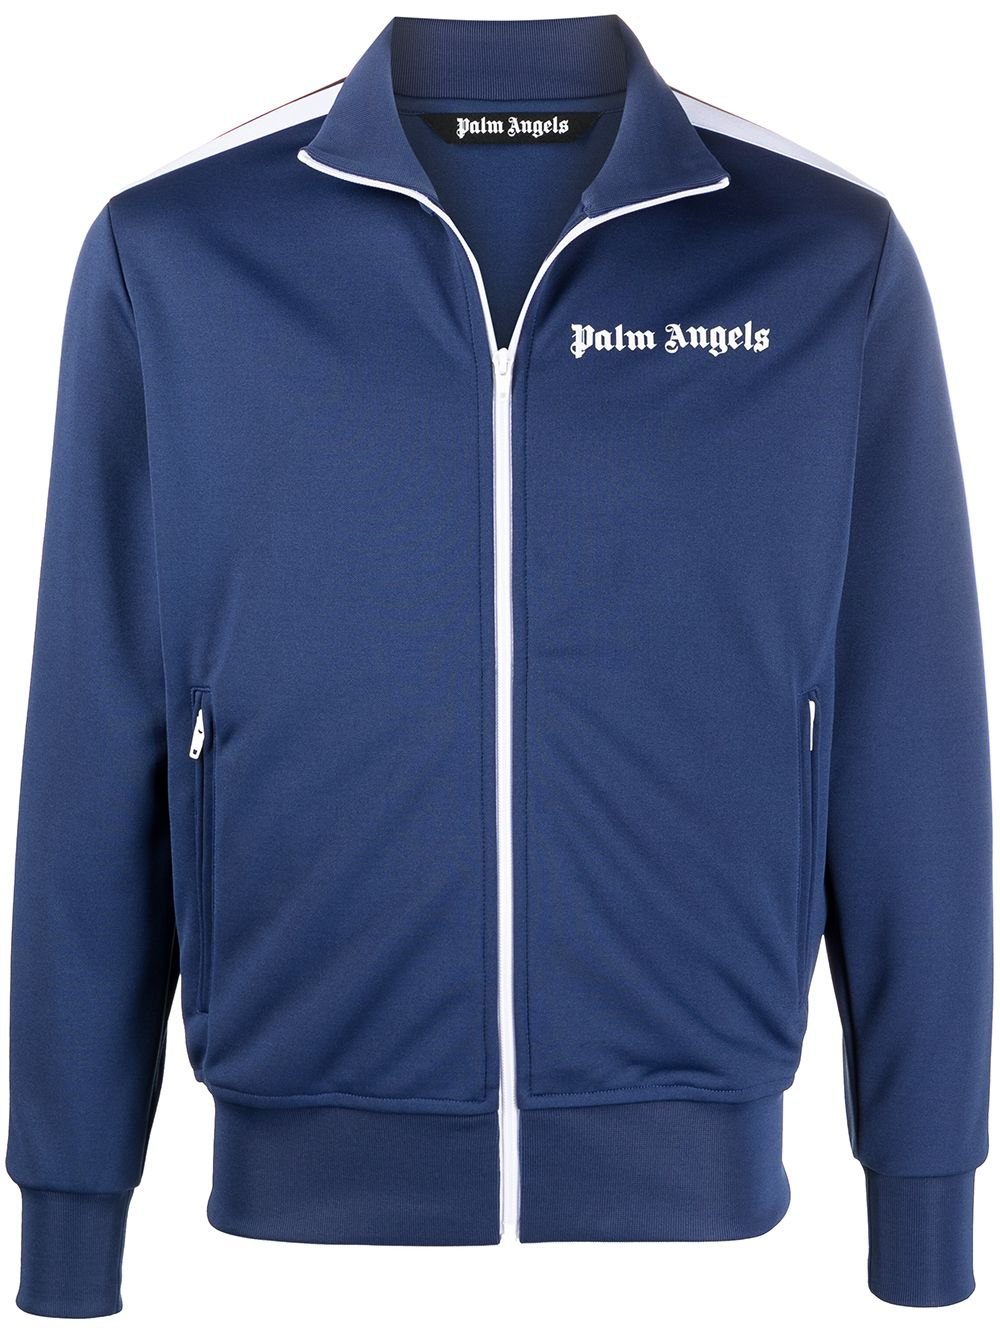 PALM ANGELS Track Jacket Navy/White - Maison De Fashion